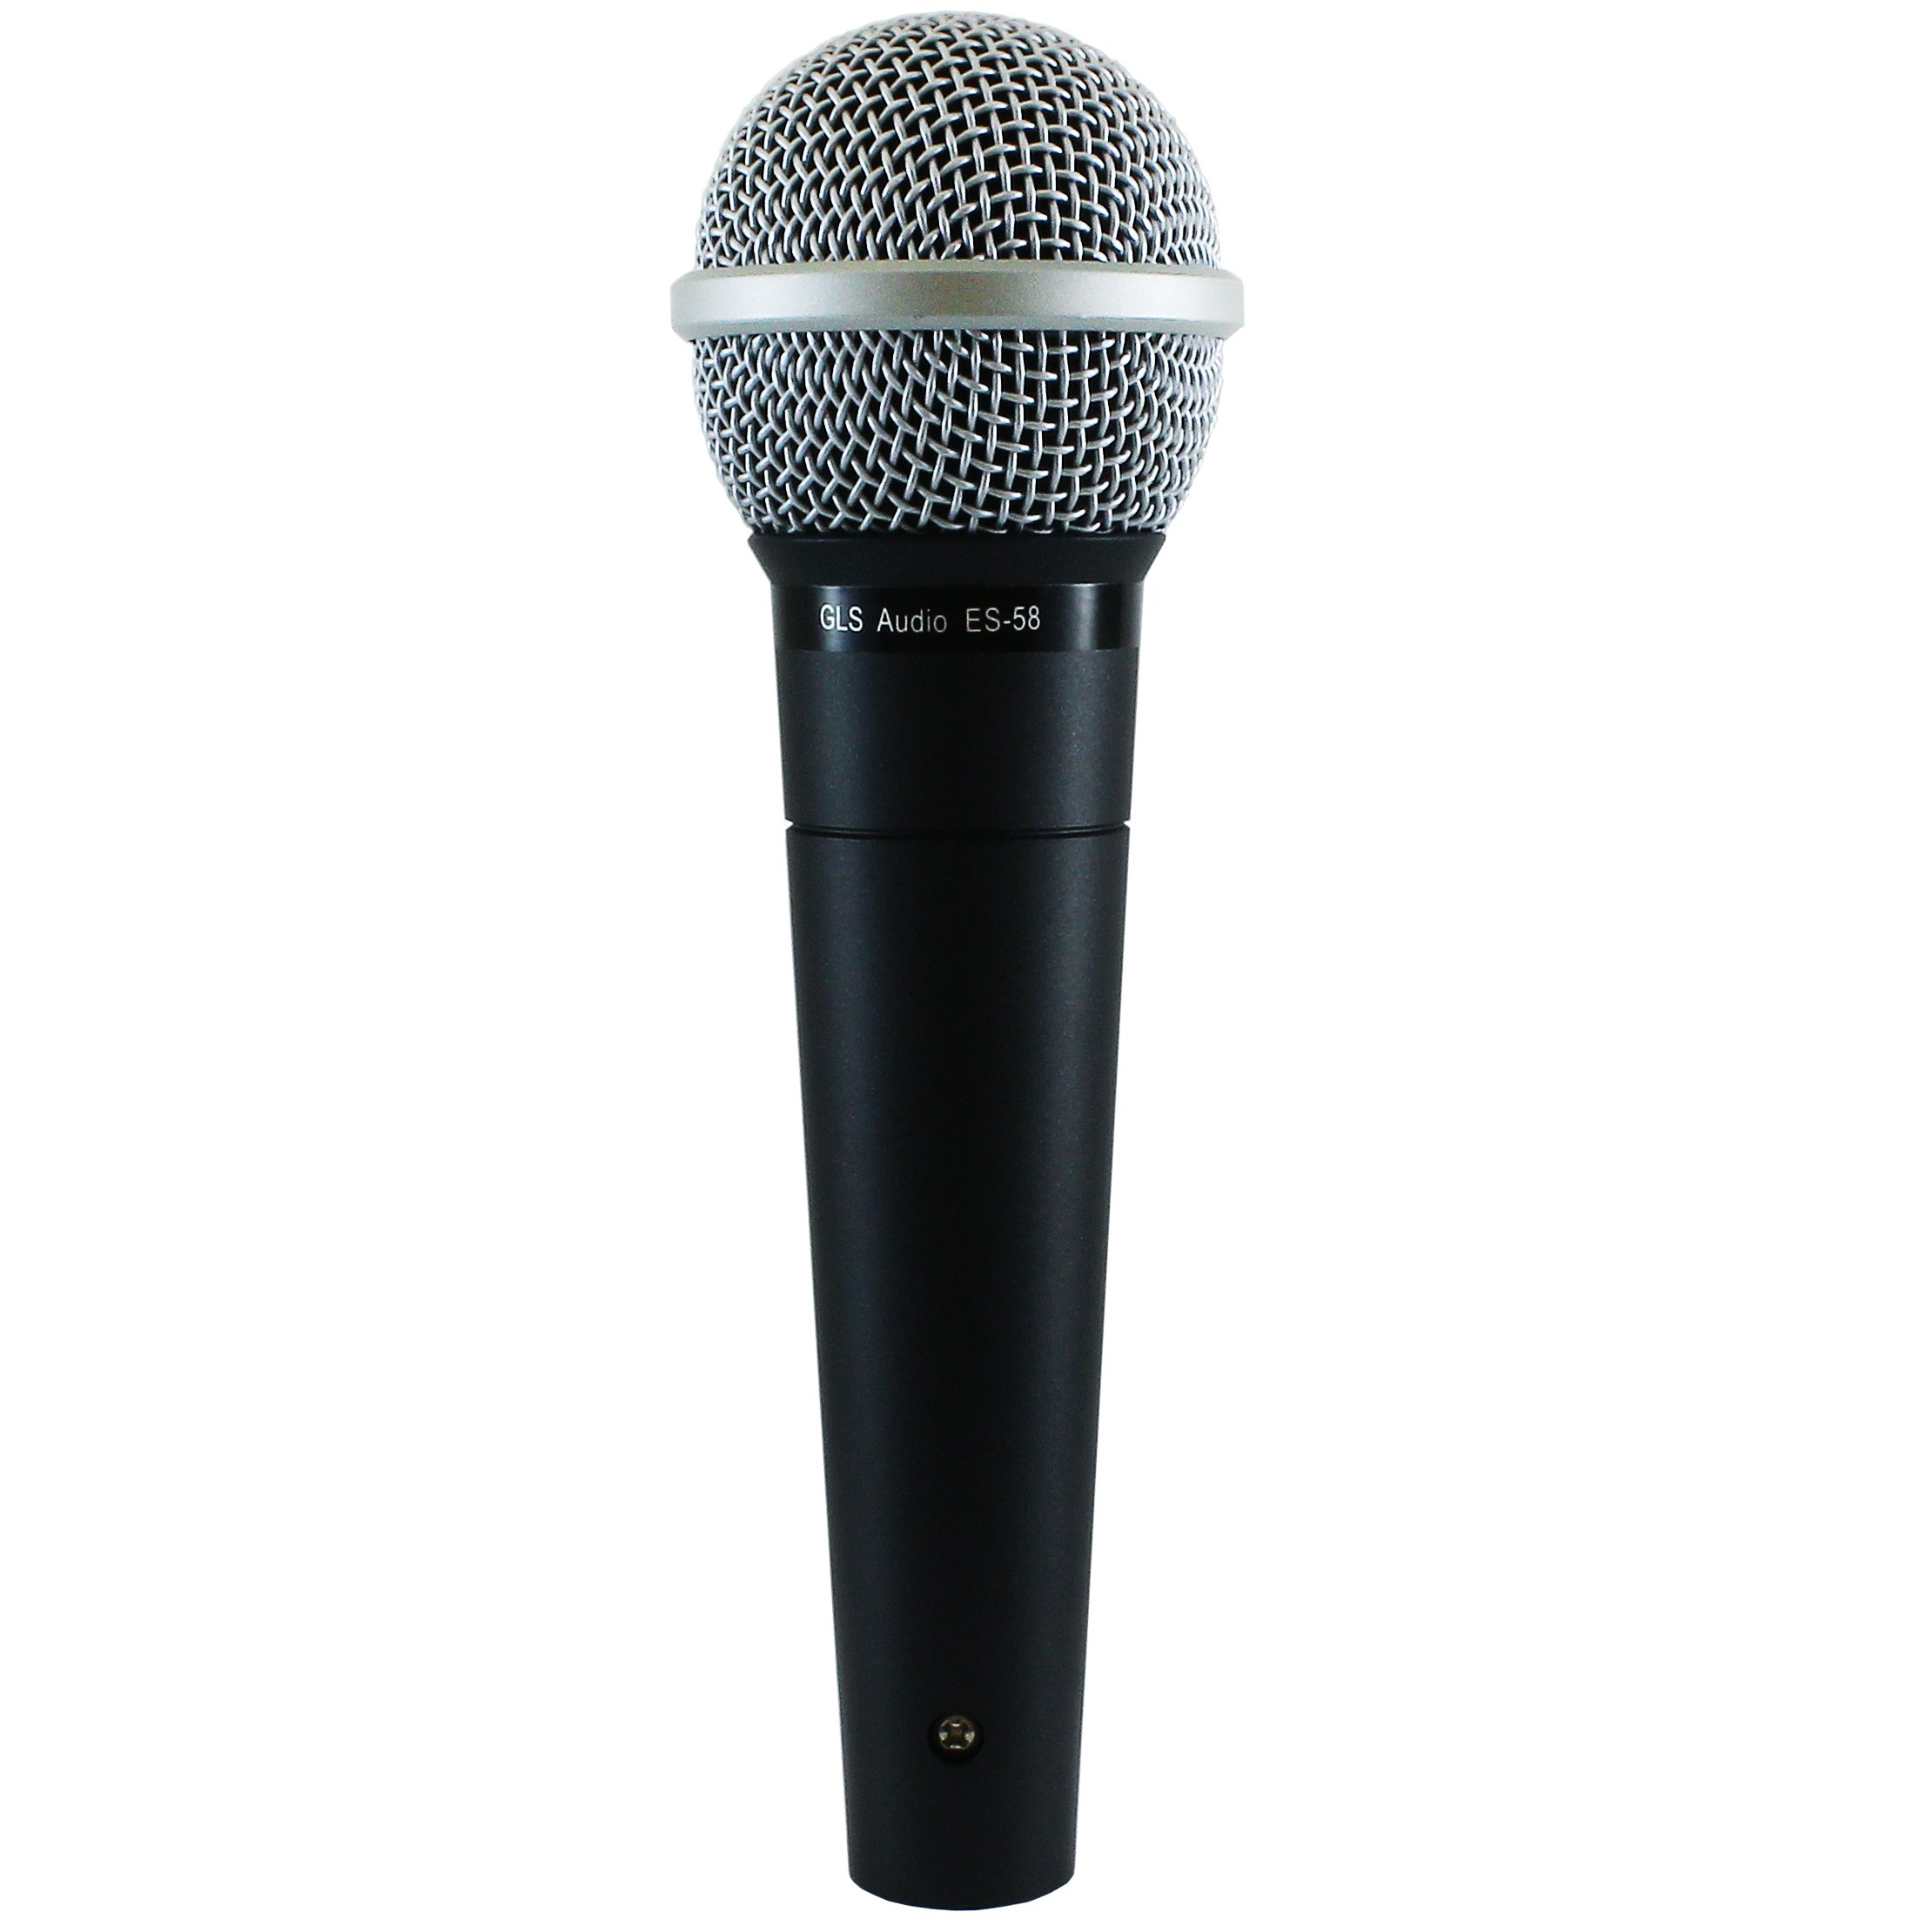 GLS Audio Vocal Microphone ES-58 & Mic Clip - Professional Series ES58 Dynamic Cardioid Mike Unidirectional (No On/Off Switch) by GLS Audio